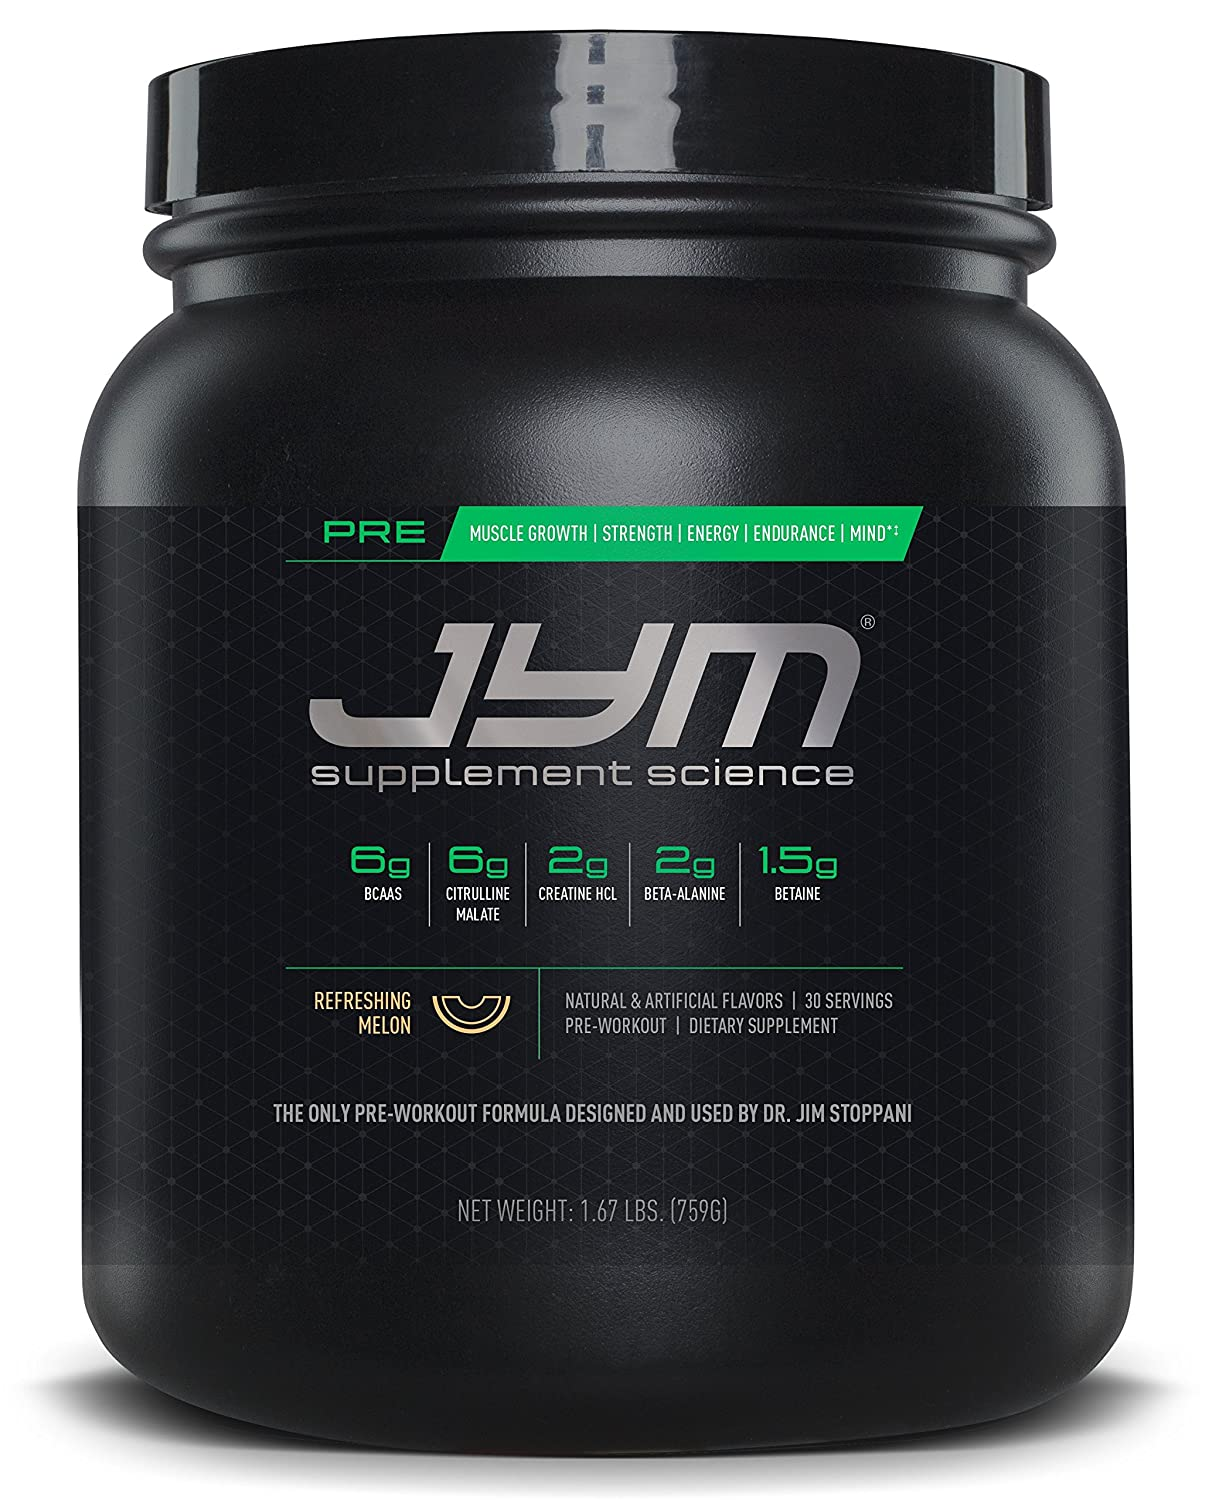 4 Reasons Why Pre Jym is one of the Best Pre-Workouts